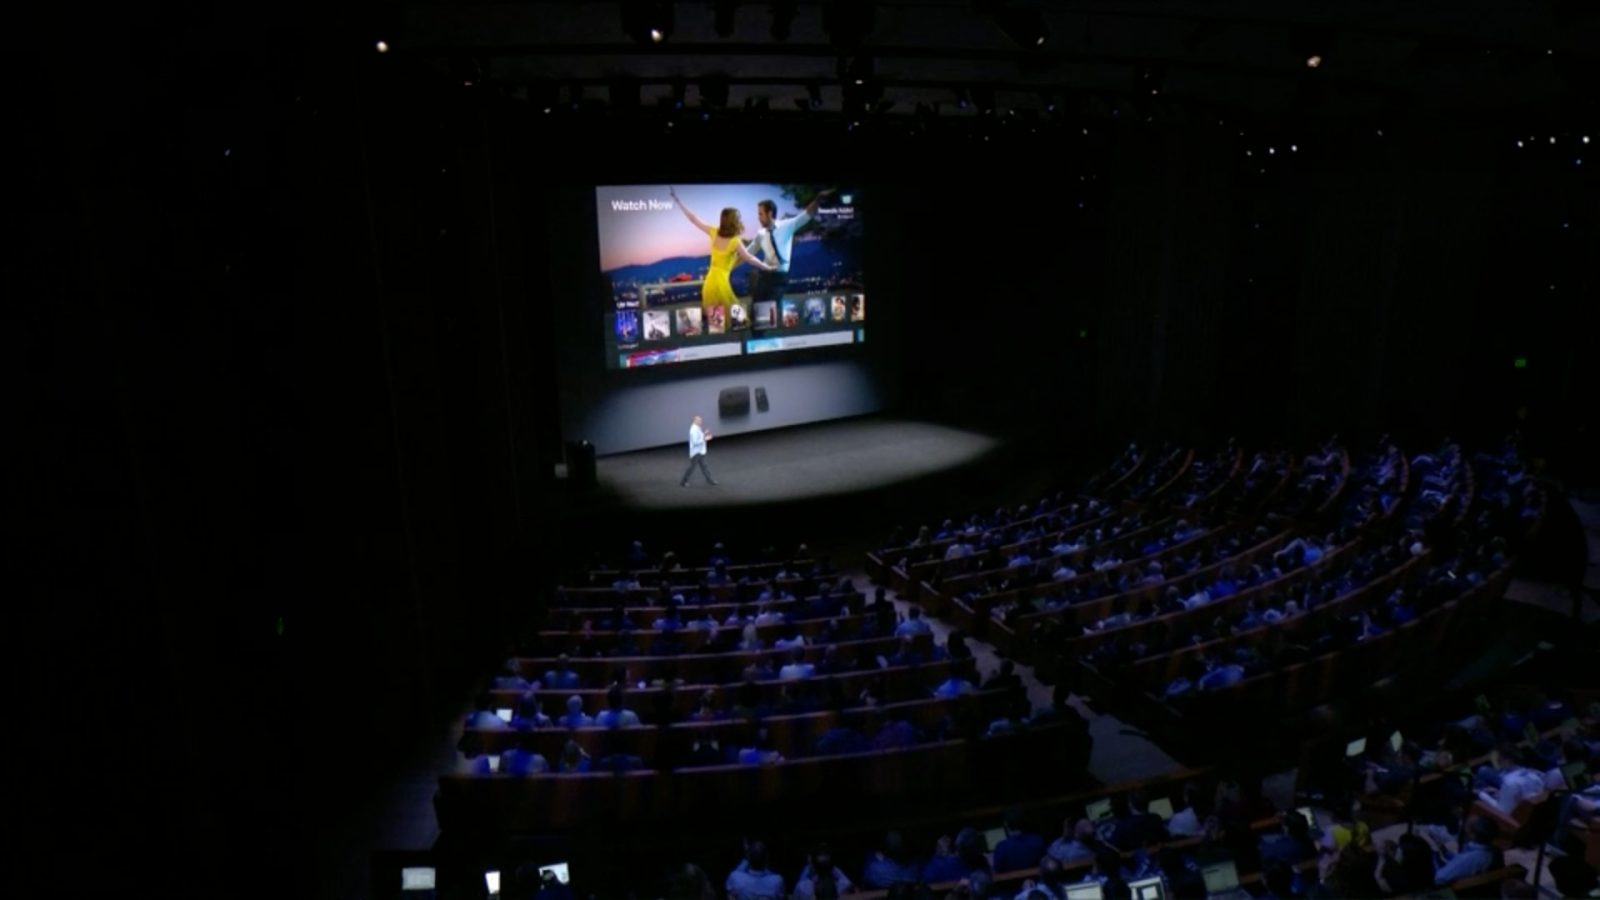 iTunes will sell 4K movies and TV shows for the same price